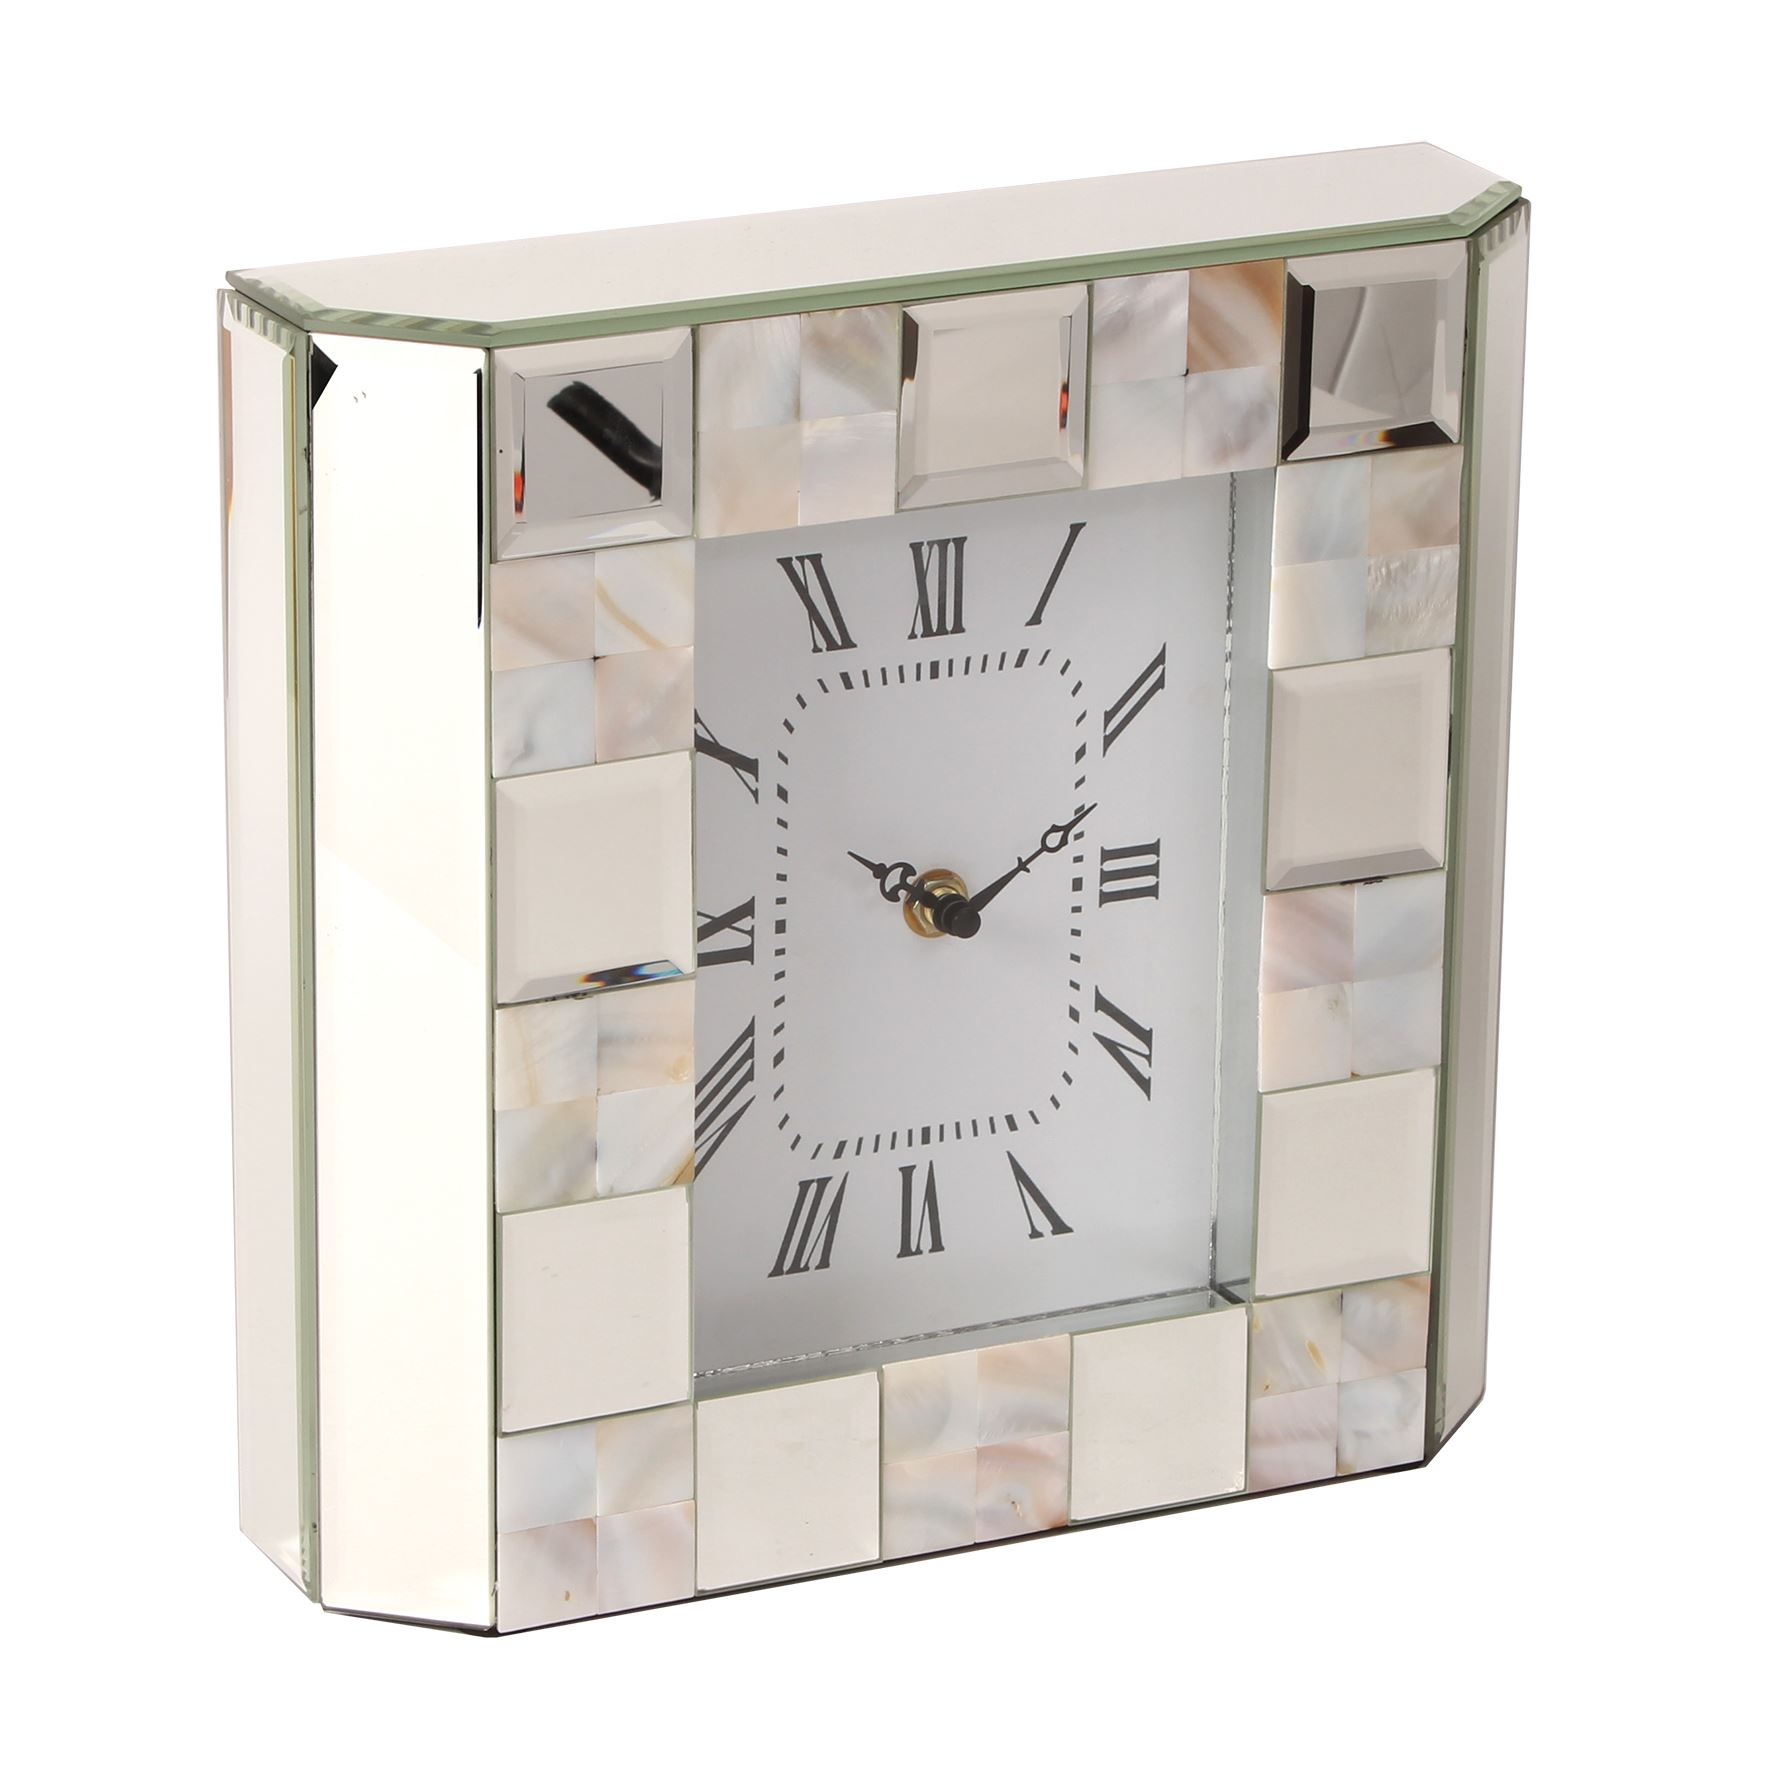 Of Gift Glass About Hestia Mother's Day Pearl Mother Details Clock Mirror Mantel fyYbgI76mv